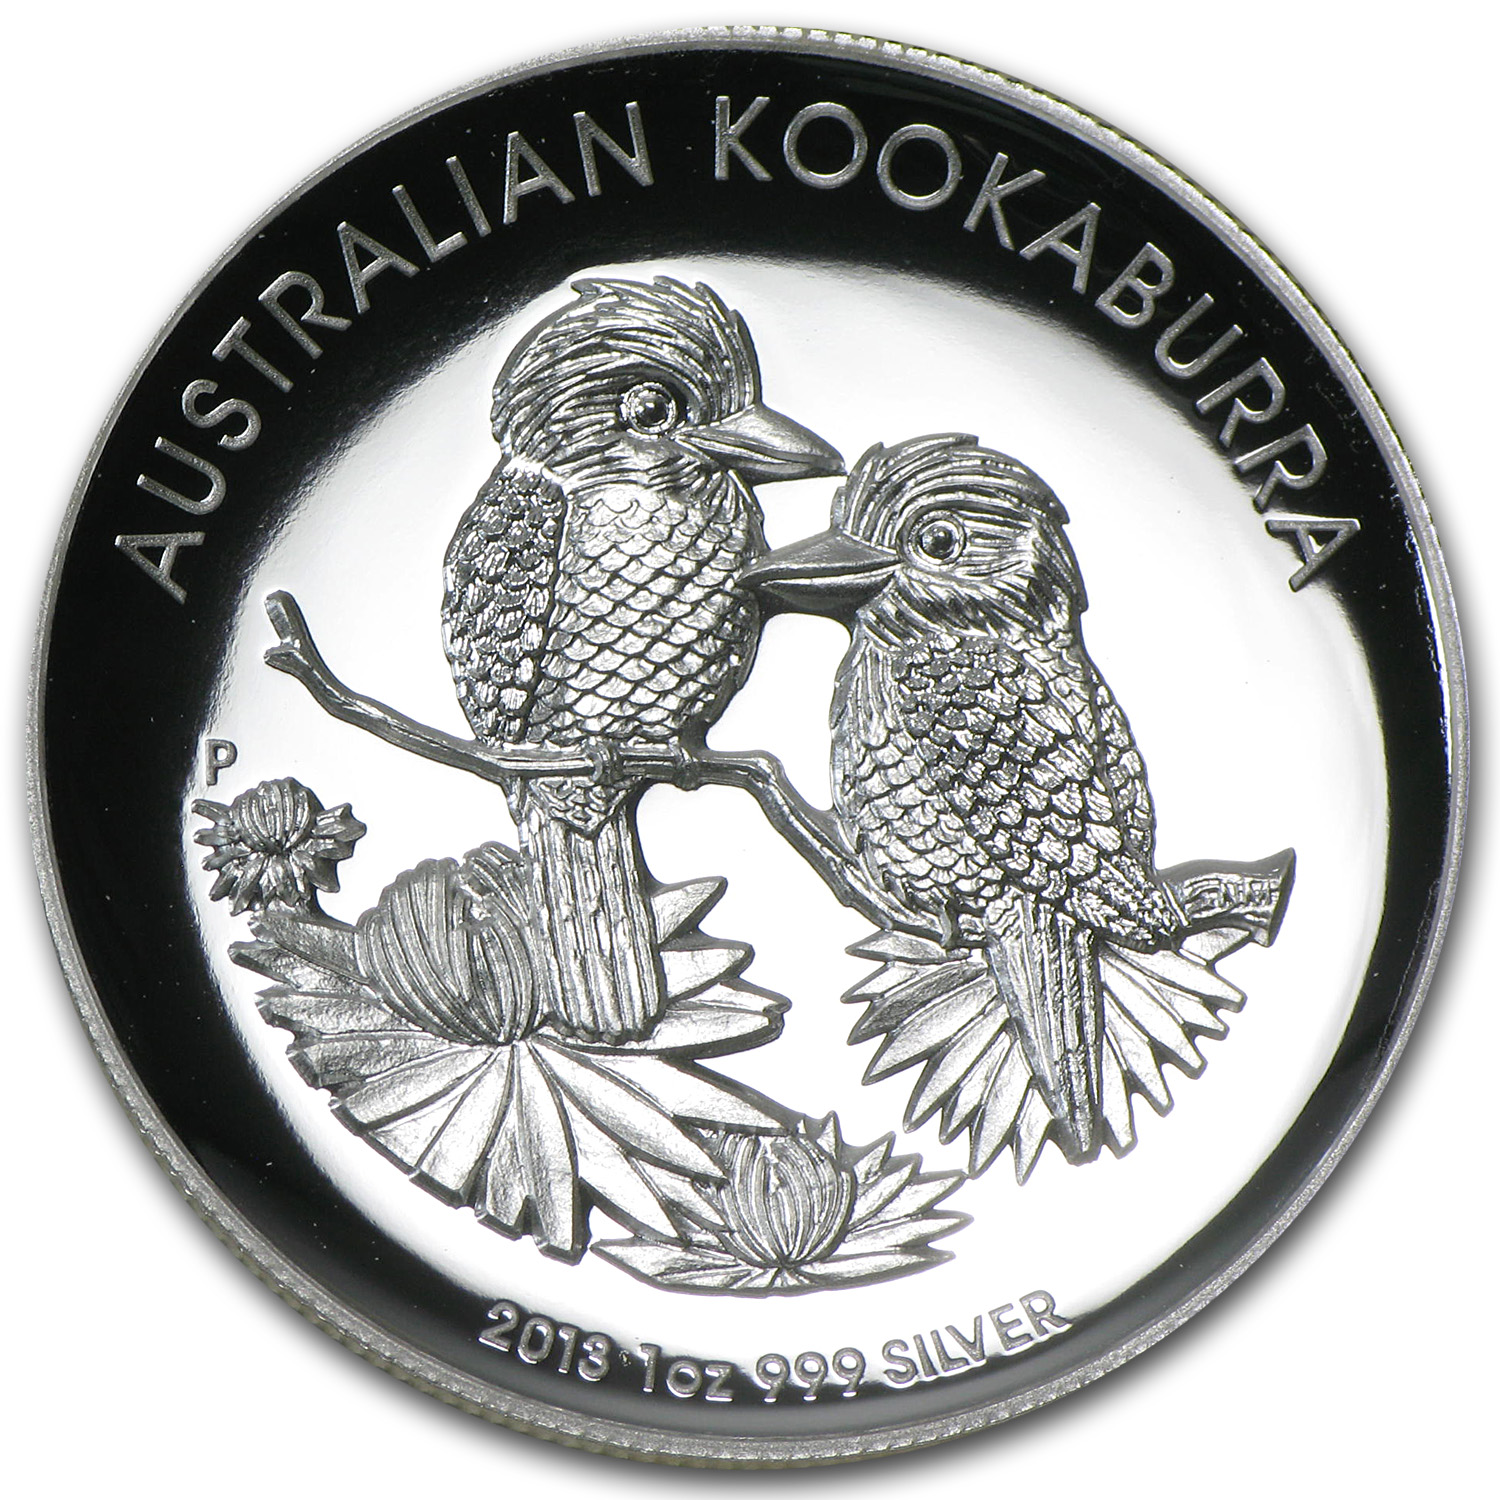 2013 1 oz Silver Australian Kookaburra Proof (High Relief)